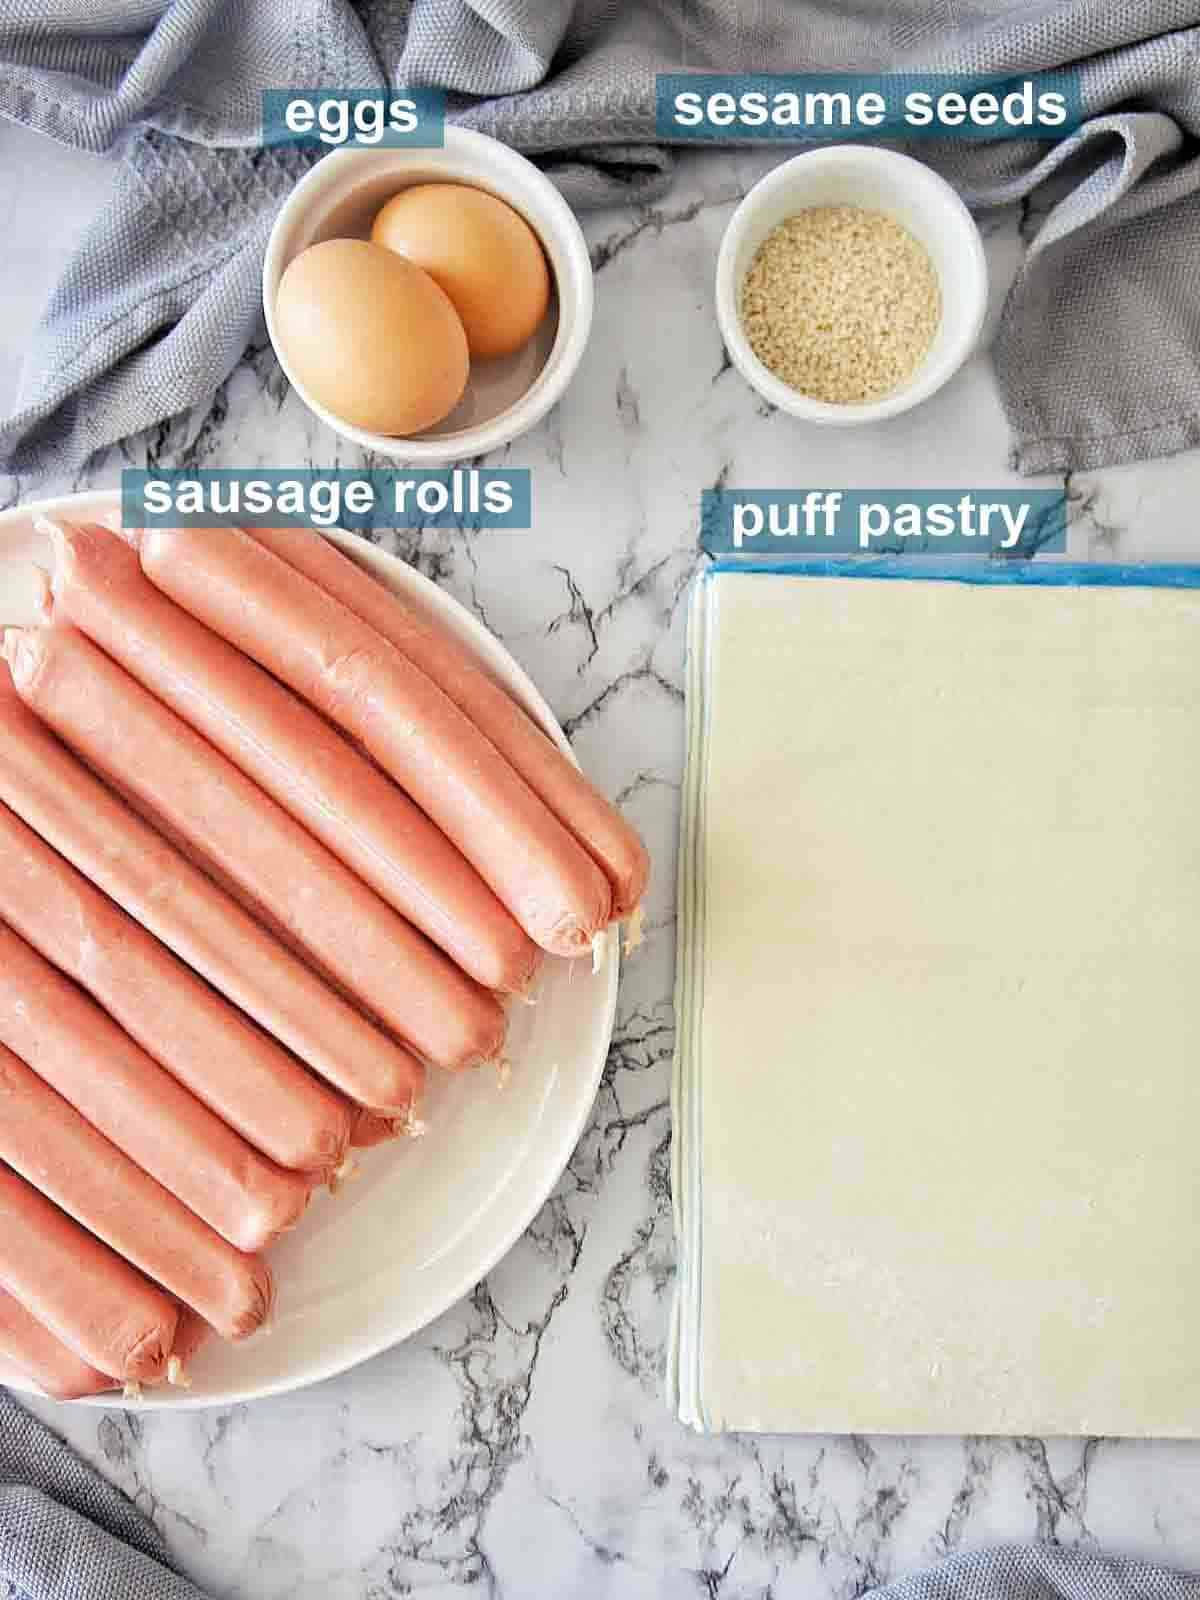 Ingredients set out and labelled for making easy sausage rolls